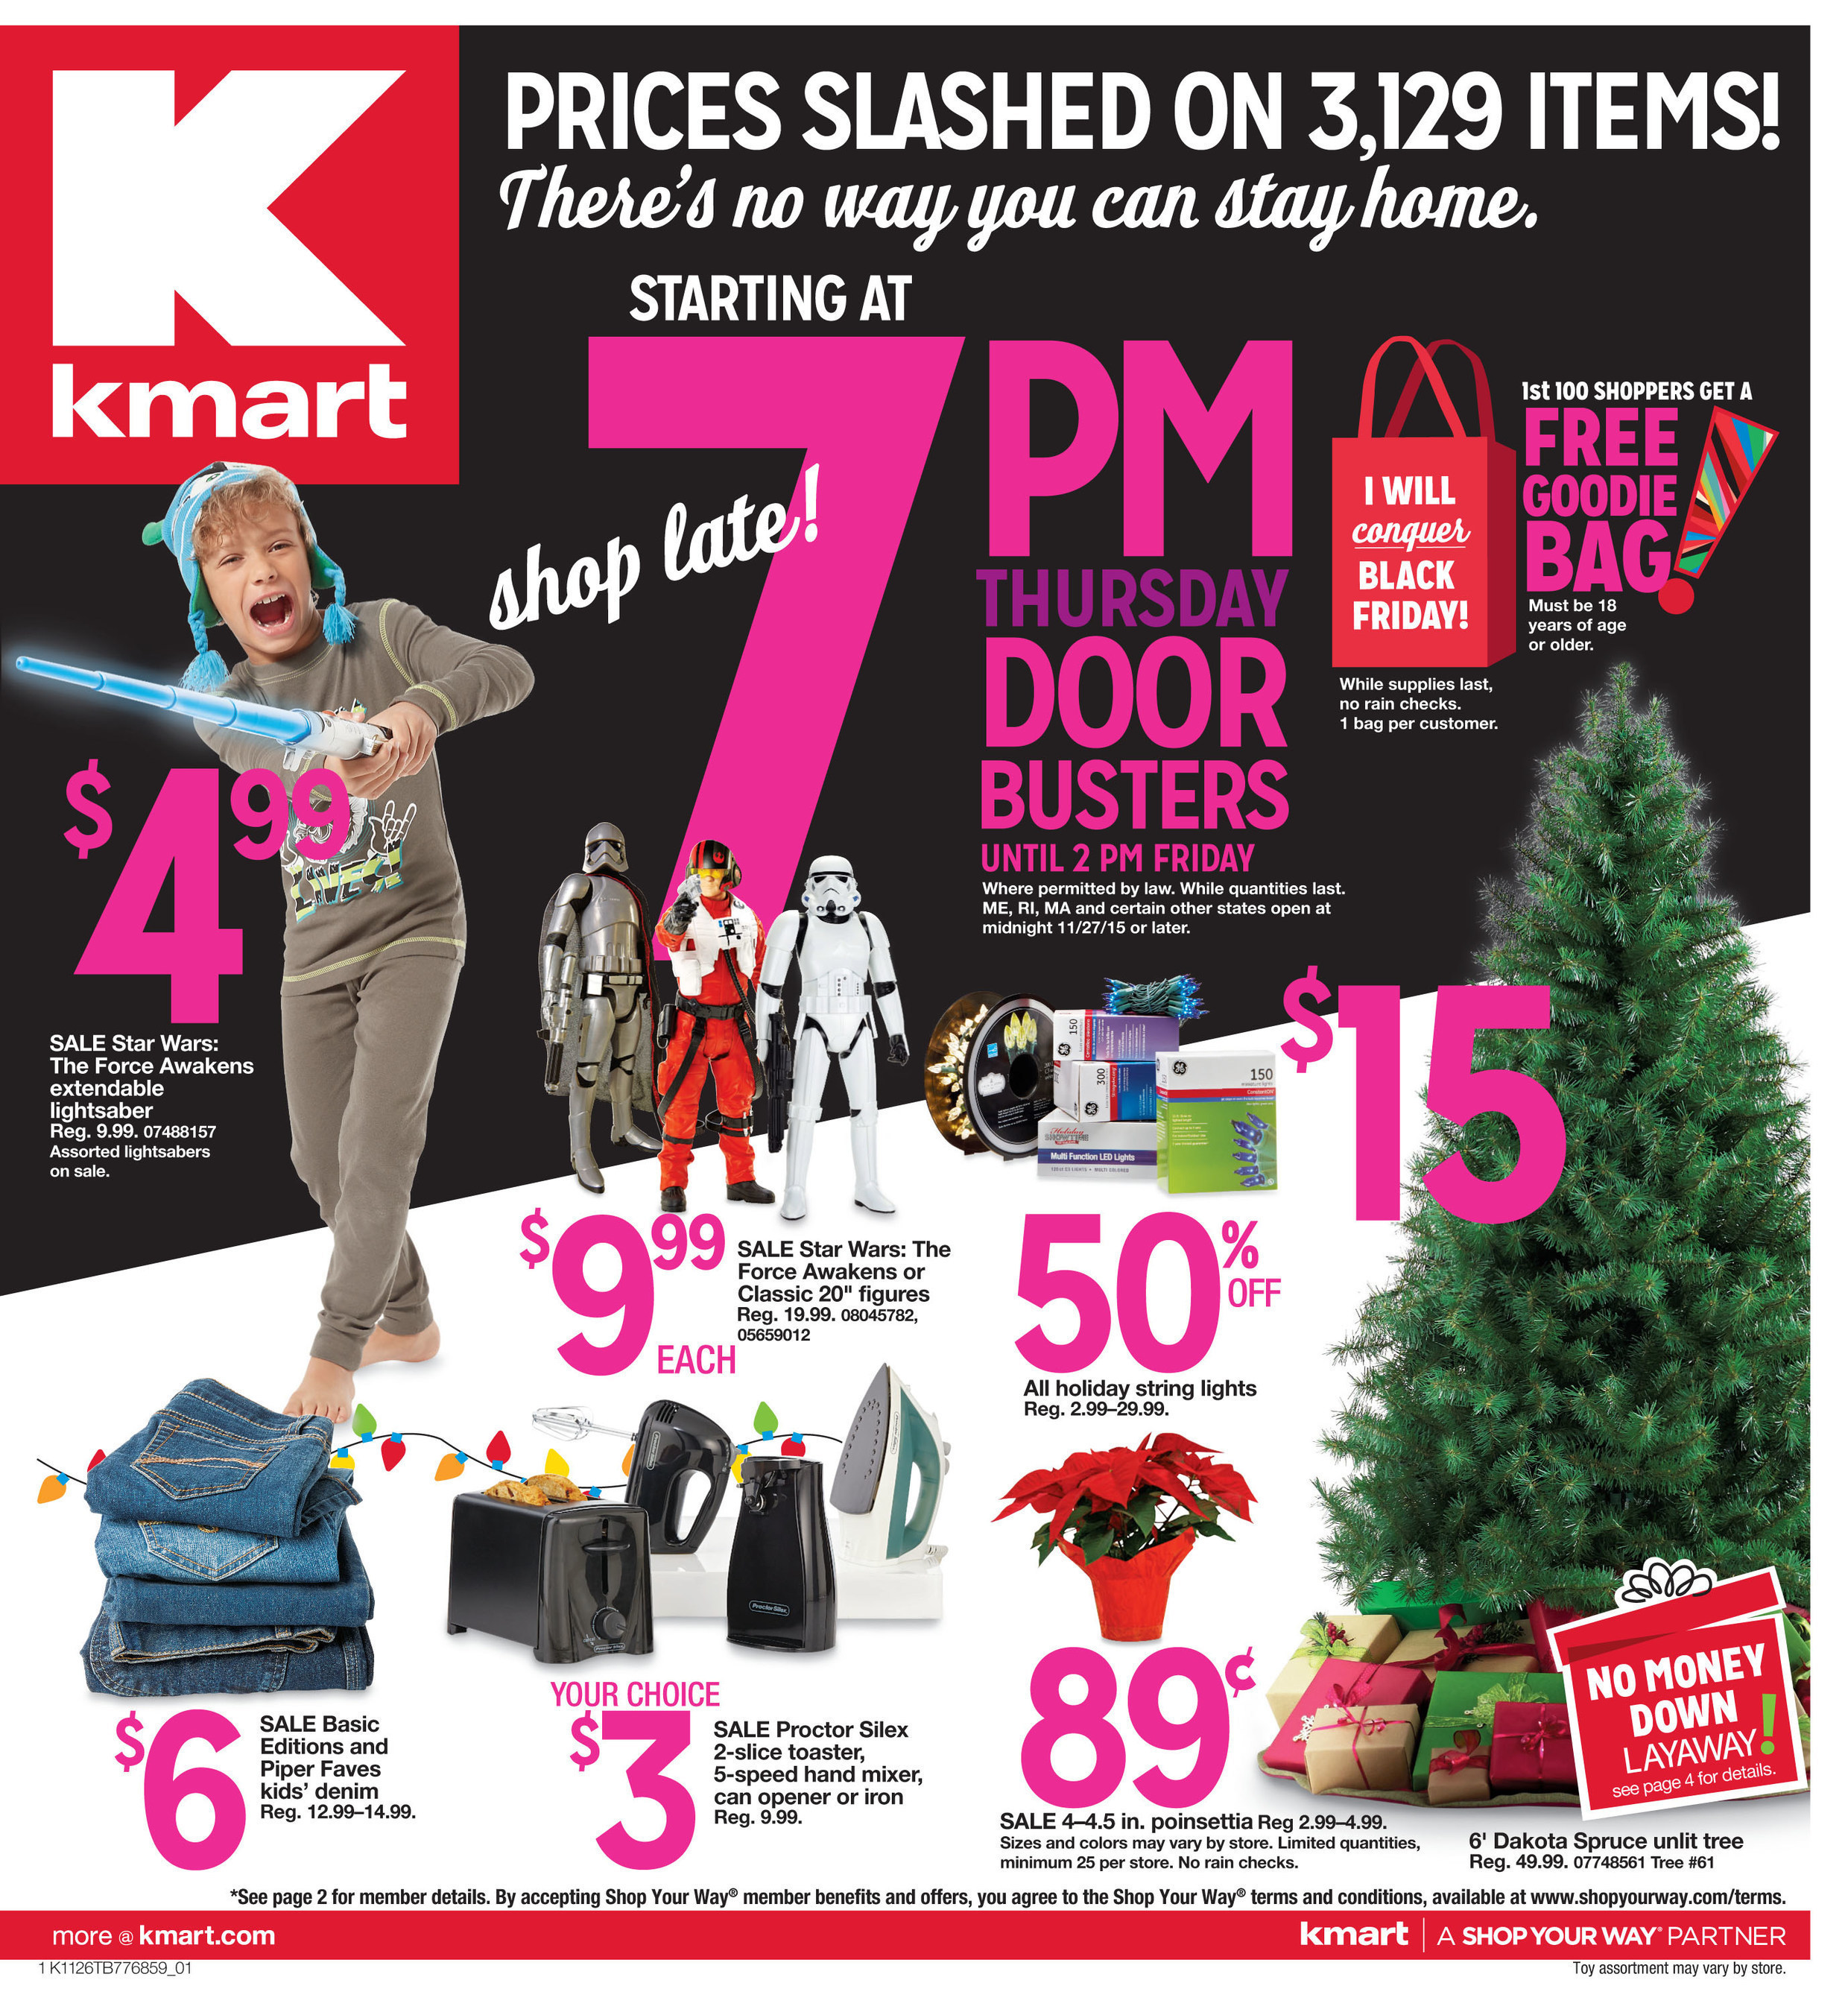 ATTENTION KMART® SHOPPERS! Your Guide to Shopping Kmart\'s ...